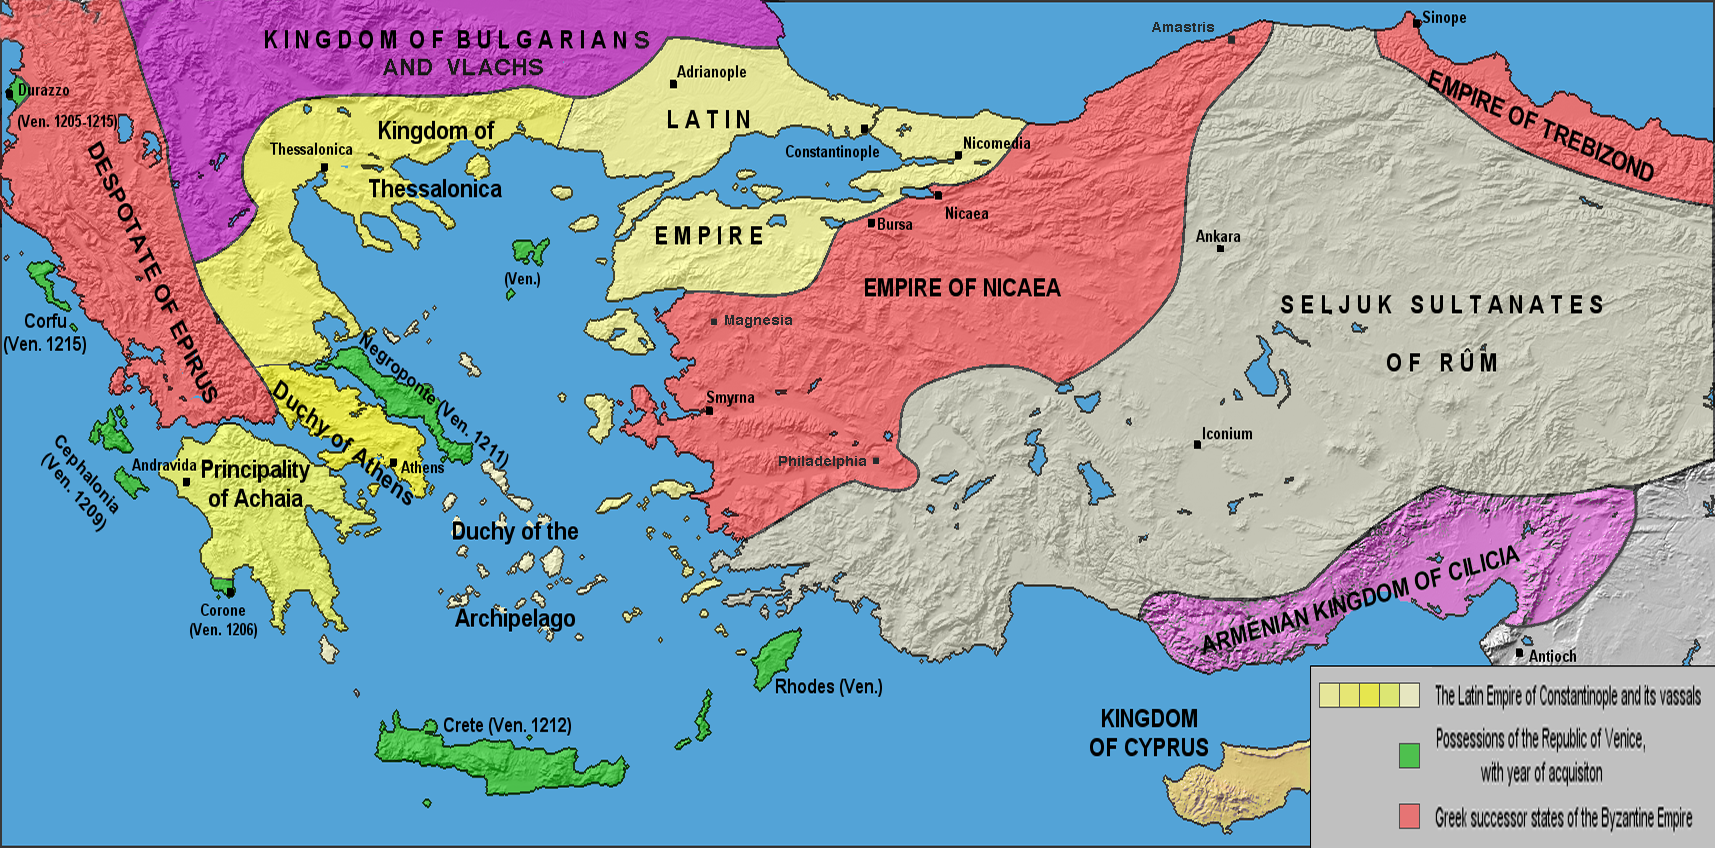 Image result for map of byzantine empire 1204 seni marikh sejarah image result for map of byzantine empire 1204 publicscrutiny Choice Image